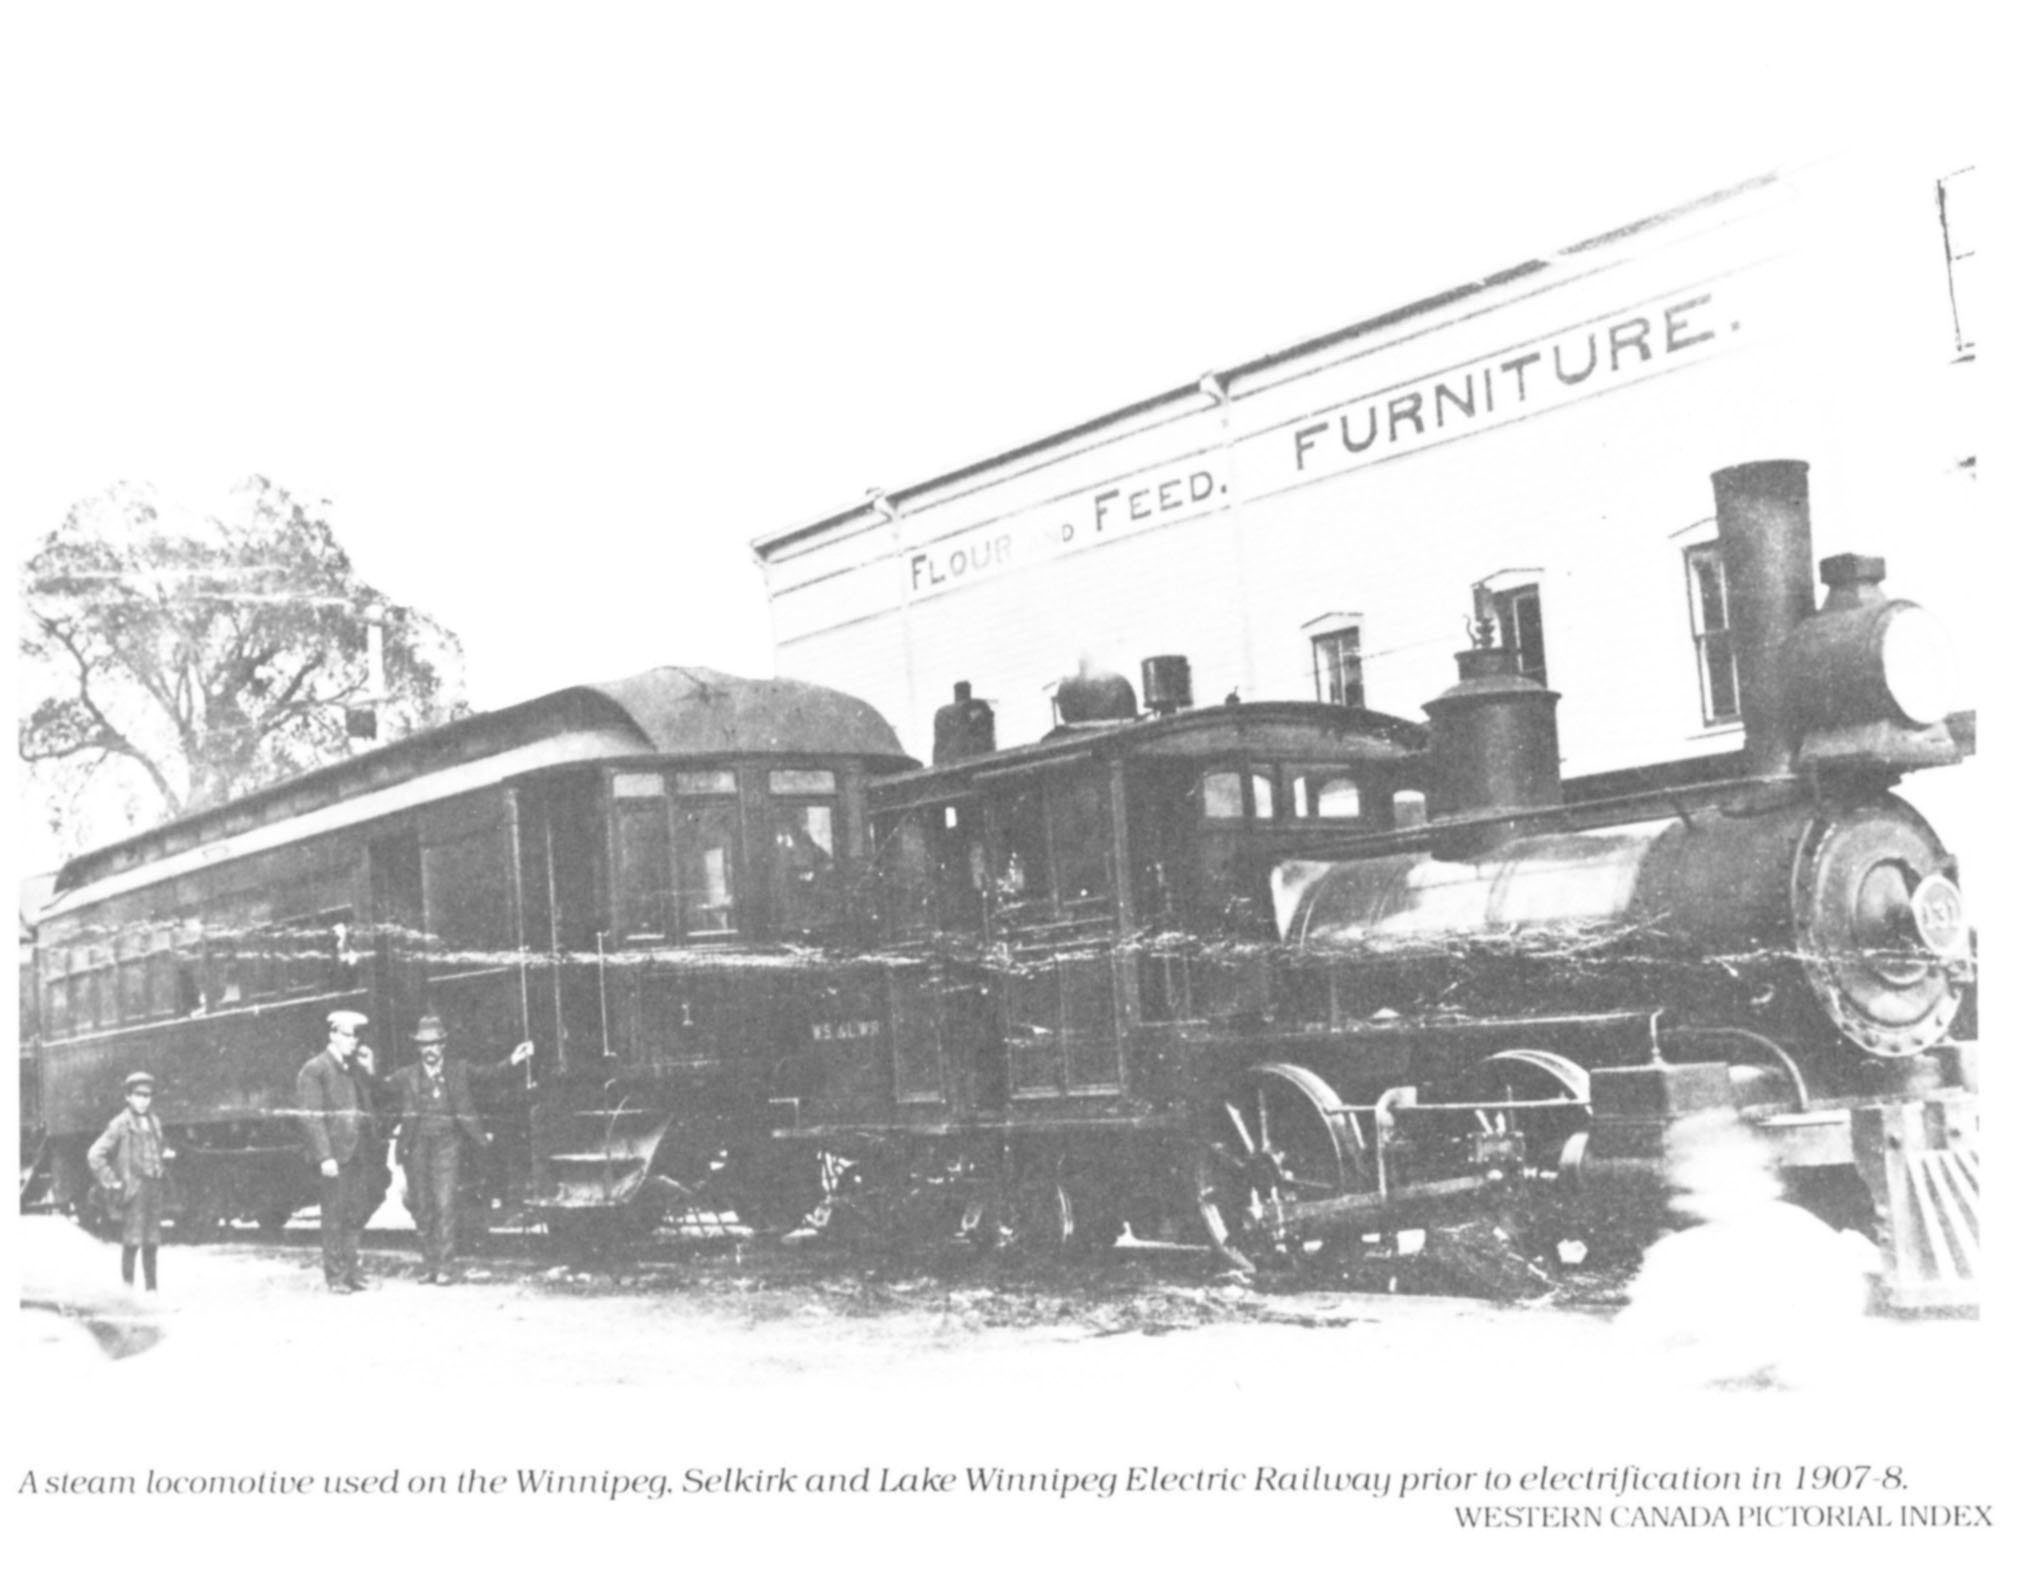 Used Car Batteries >> The Canadian Pacific Railway: A Story for Kids - Red River North Heritage